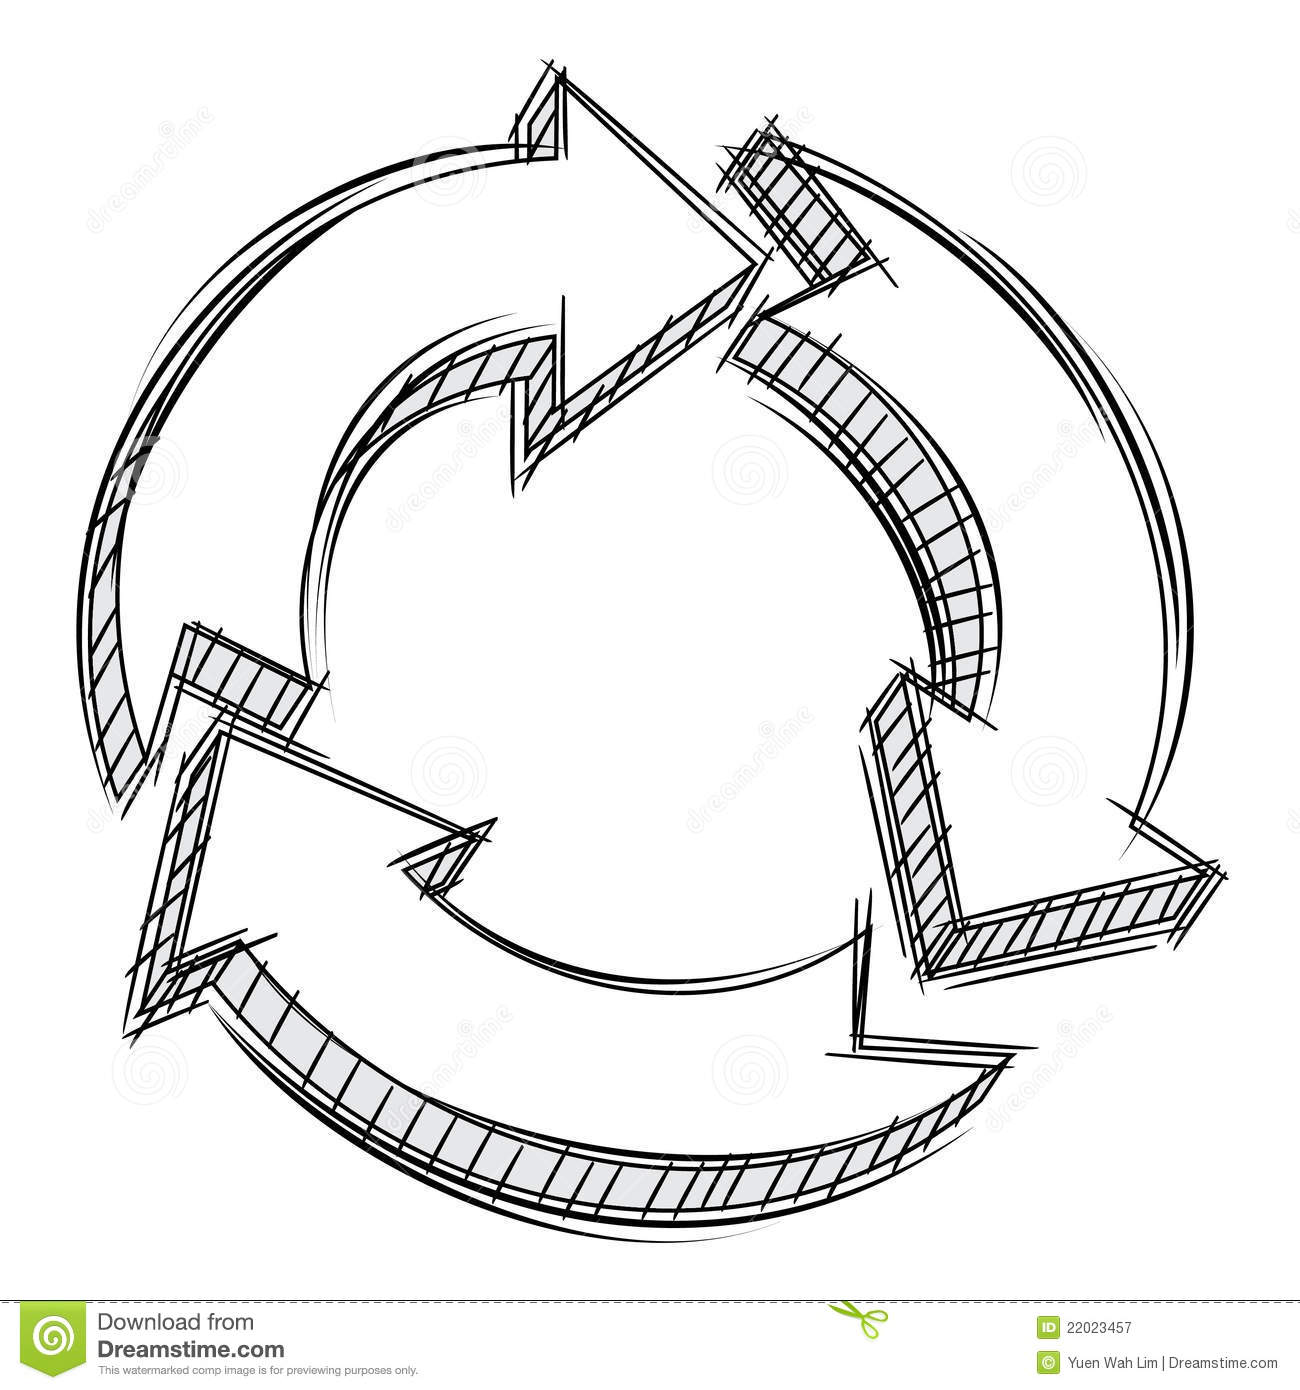 Arrow cycle clipart three banner free Doodle Of Three Circular Arrows Royalty Free Stock Photography ... banner free